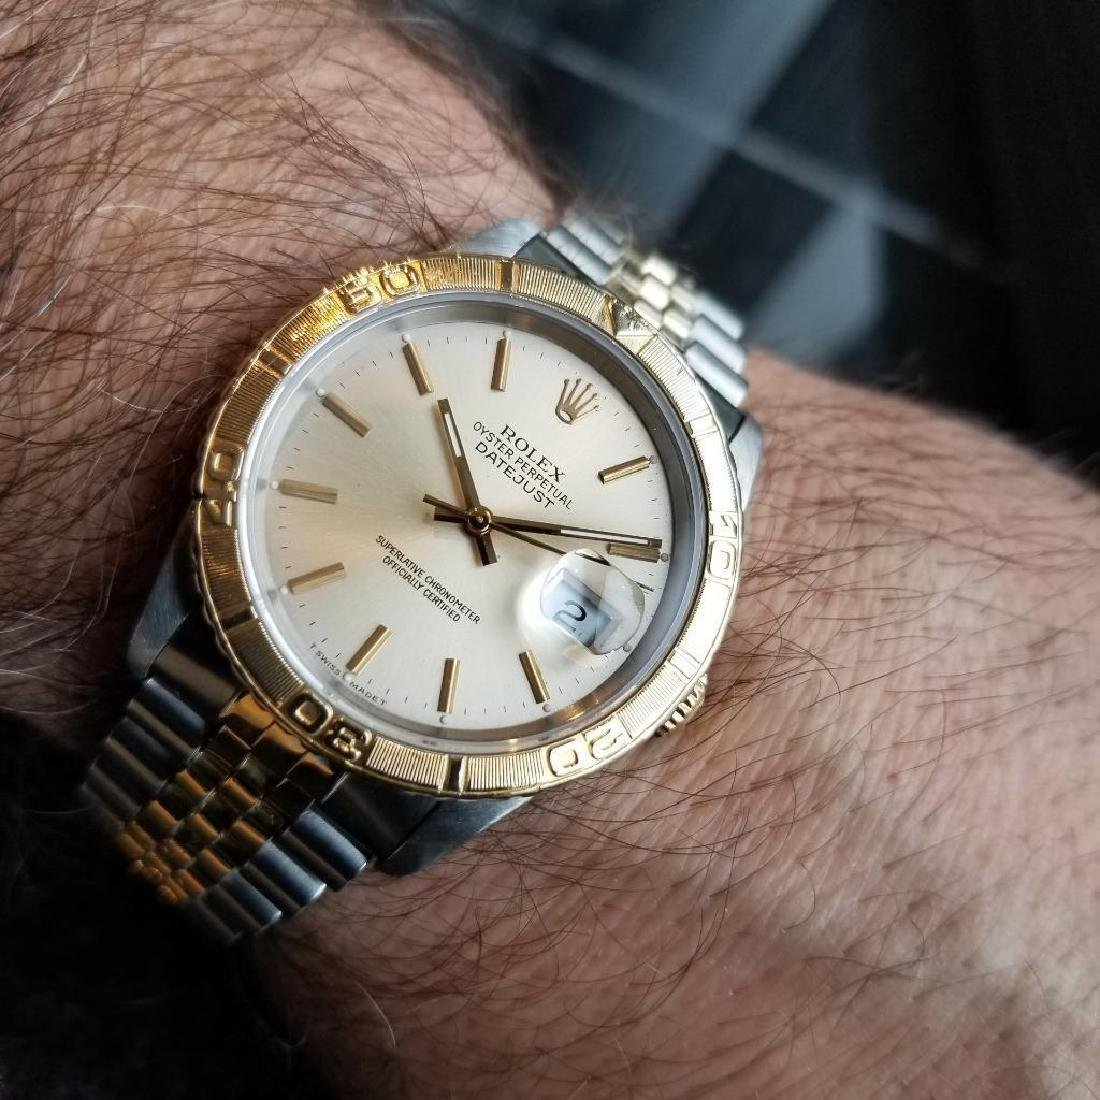 Rolex 1990 Oyster 162633 Automatic Datejust Men's Gold - 10